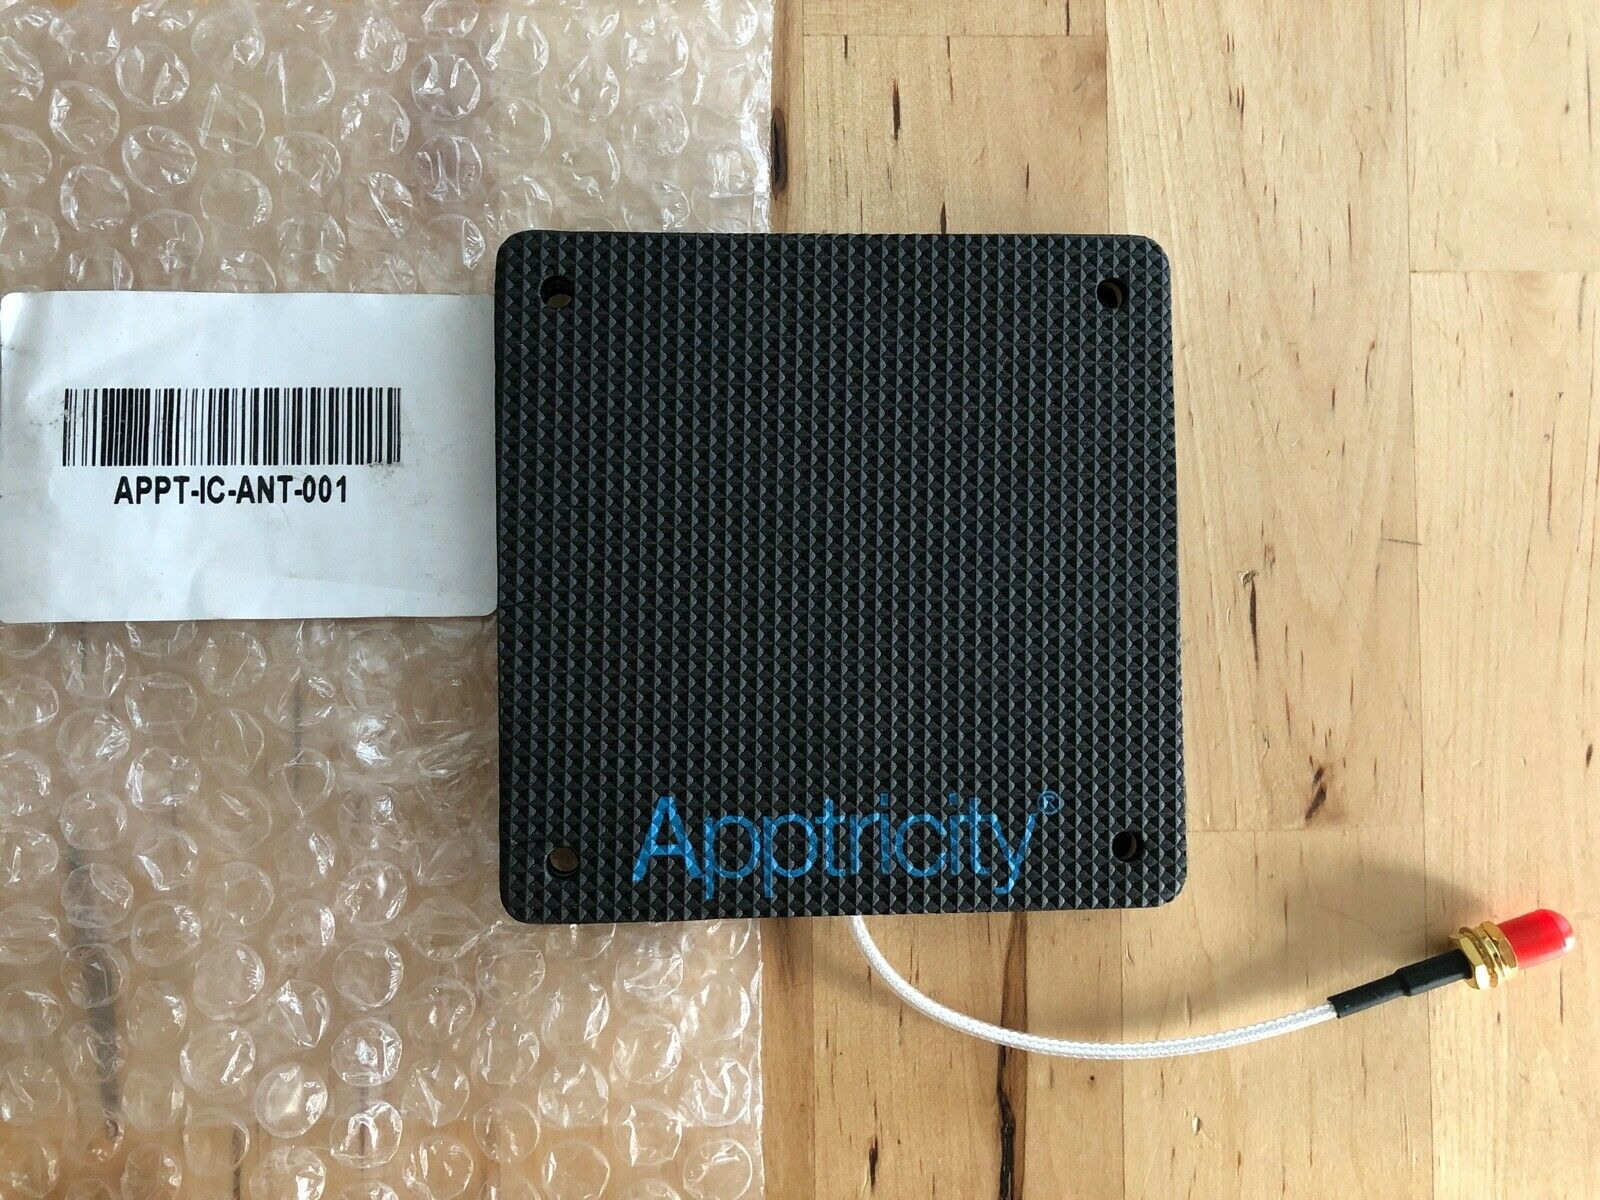 Apptricity APPT-IC-ANT-001 New Antenna